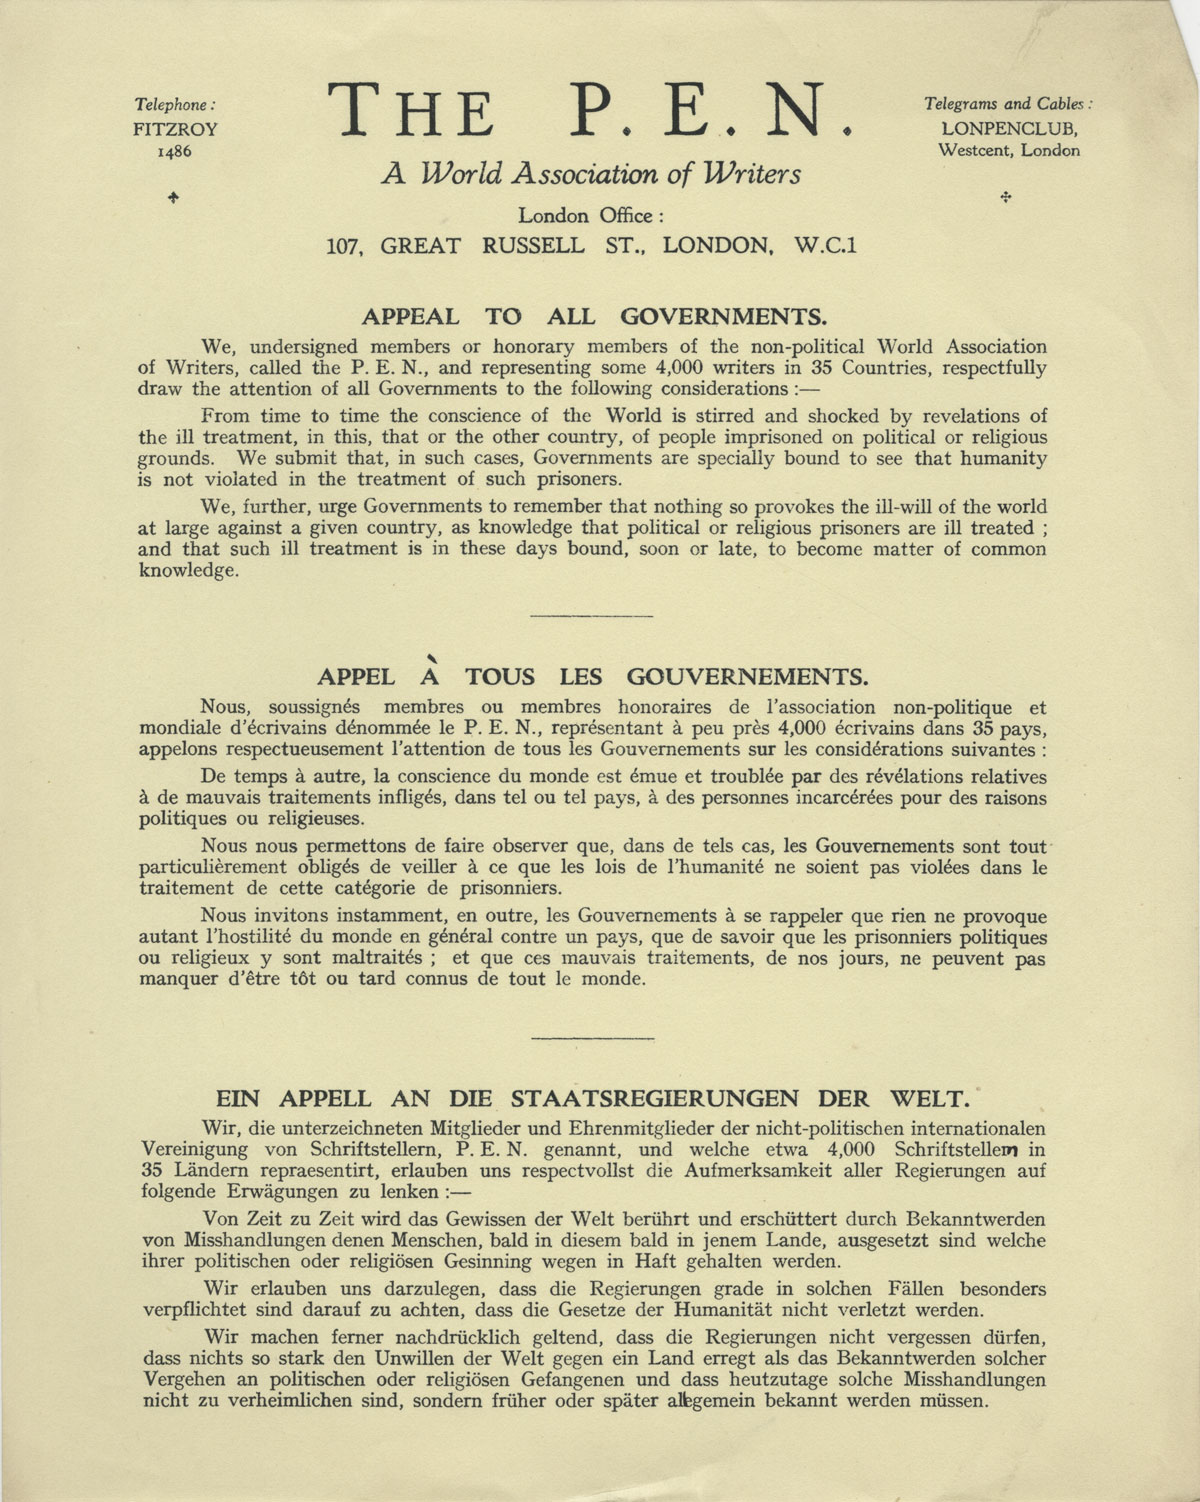 PEN. Appeal to All Governments, printed text in English, French, and German, 1931.